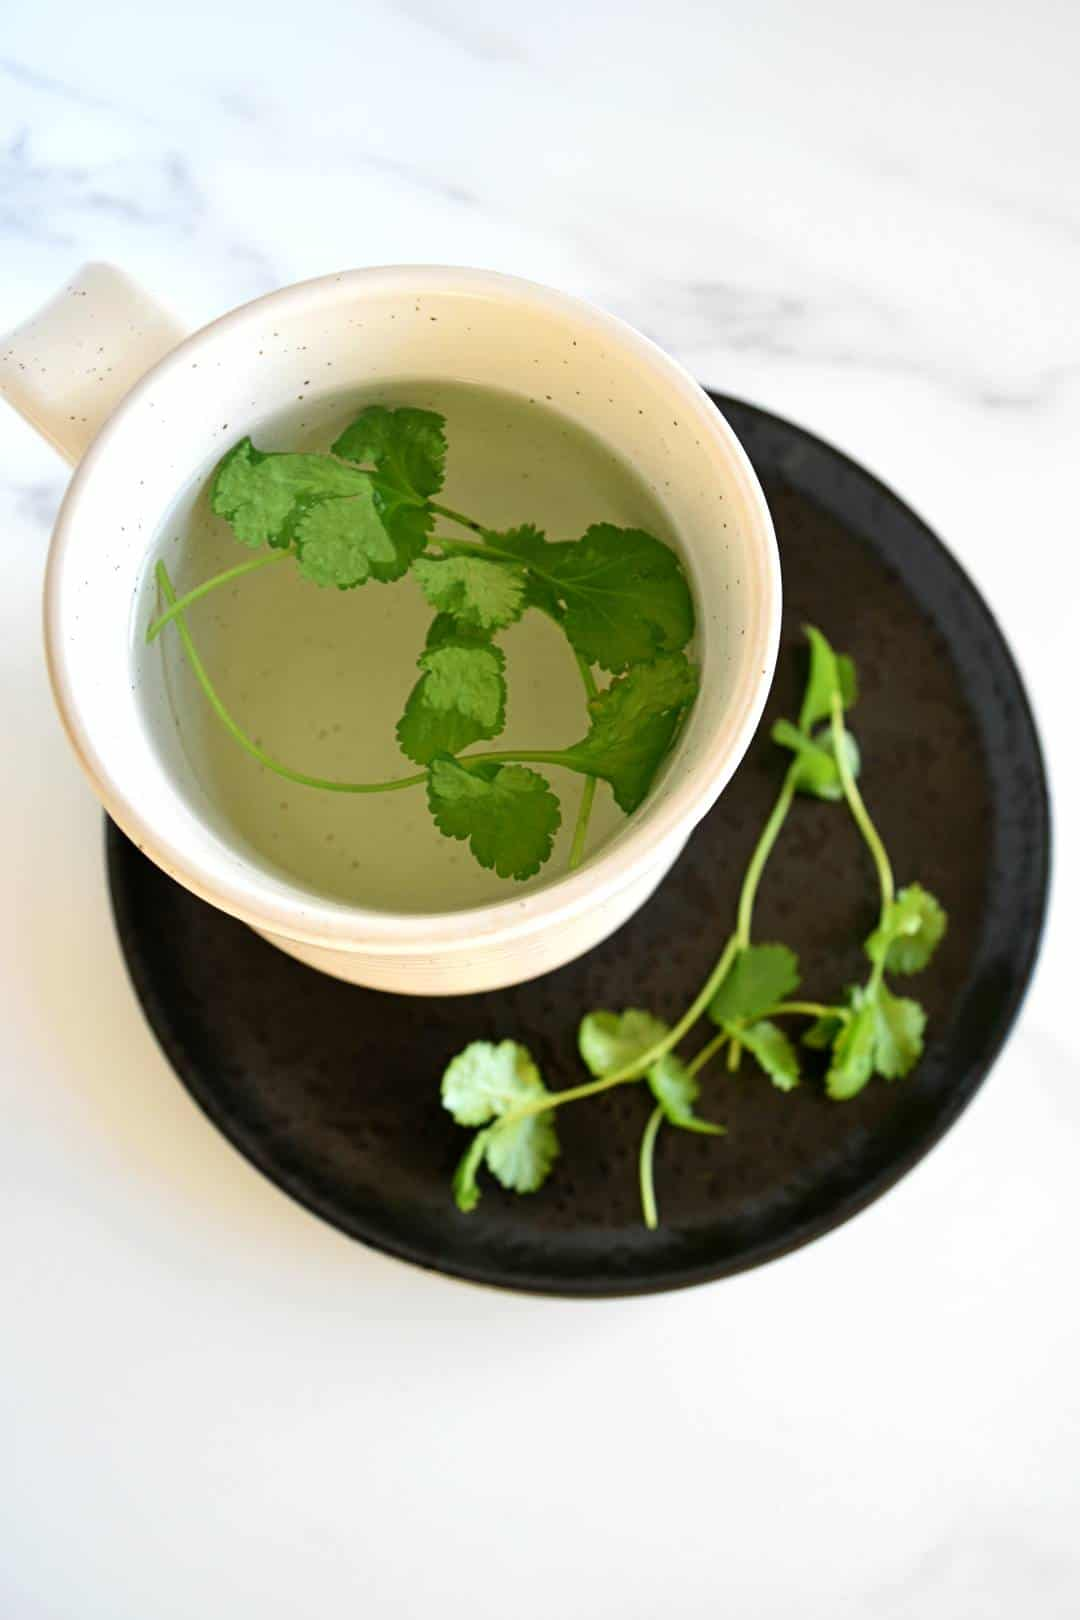 Cilantro tea steeping in a cup.